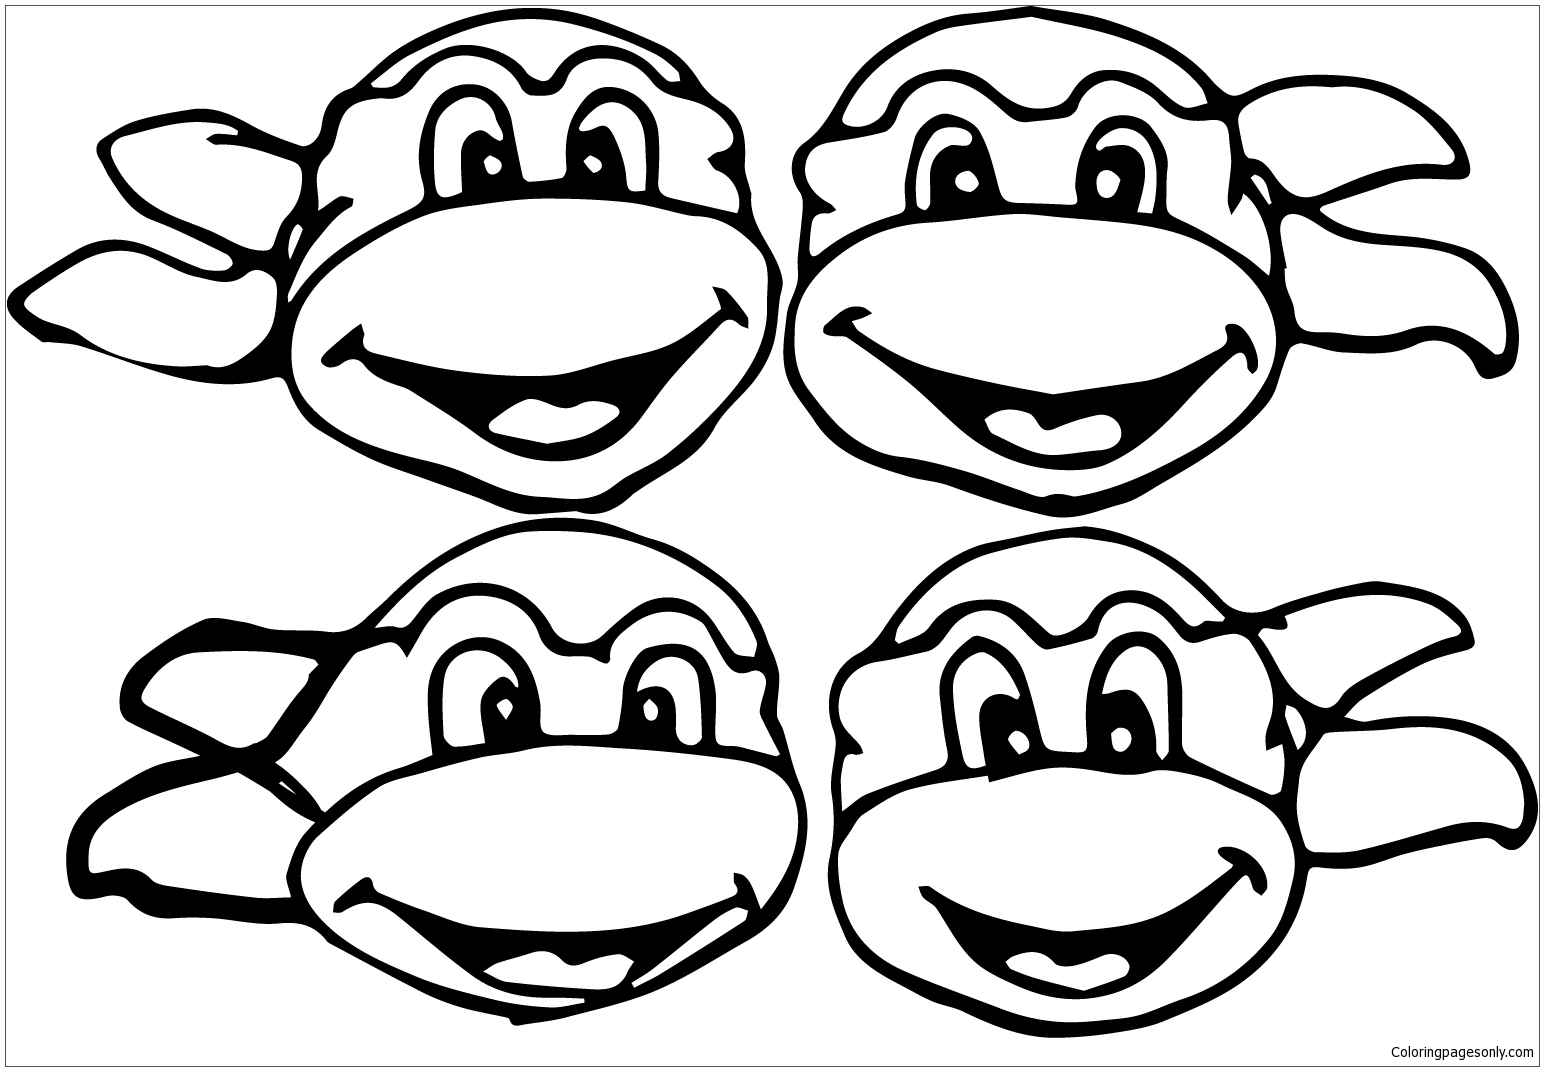 - Clipart Turtle Coloring Page - Free Coloring Pages Online